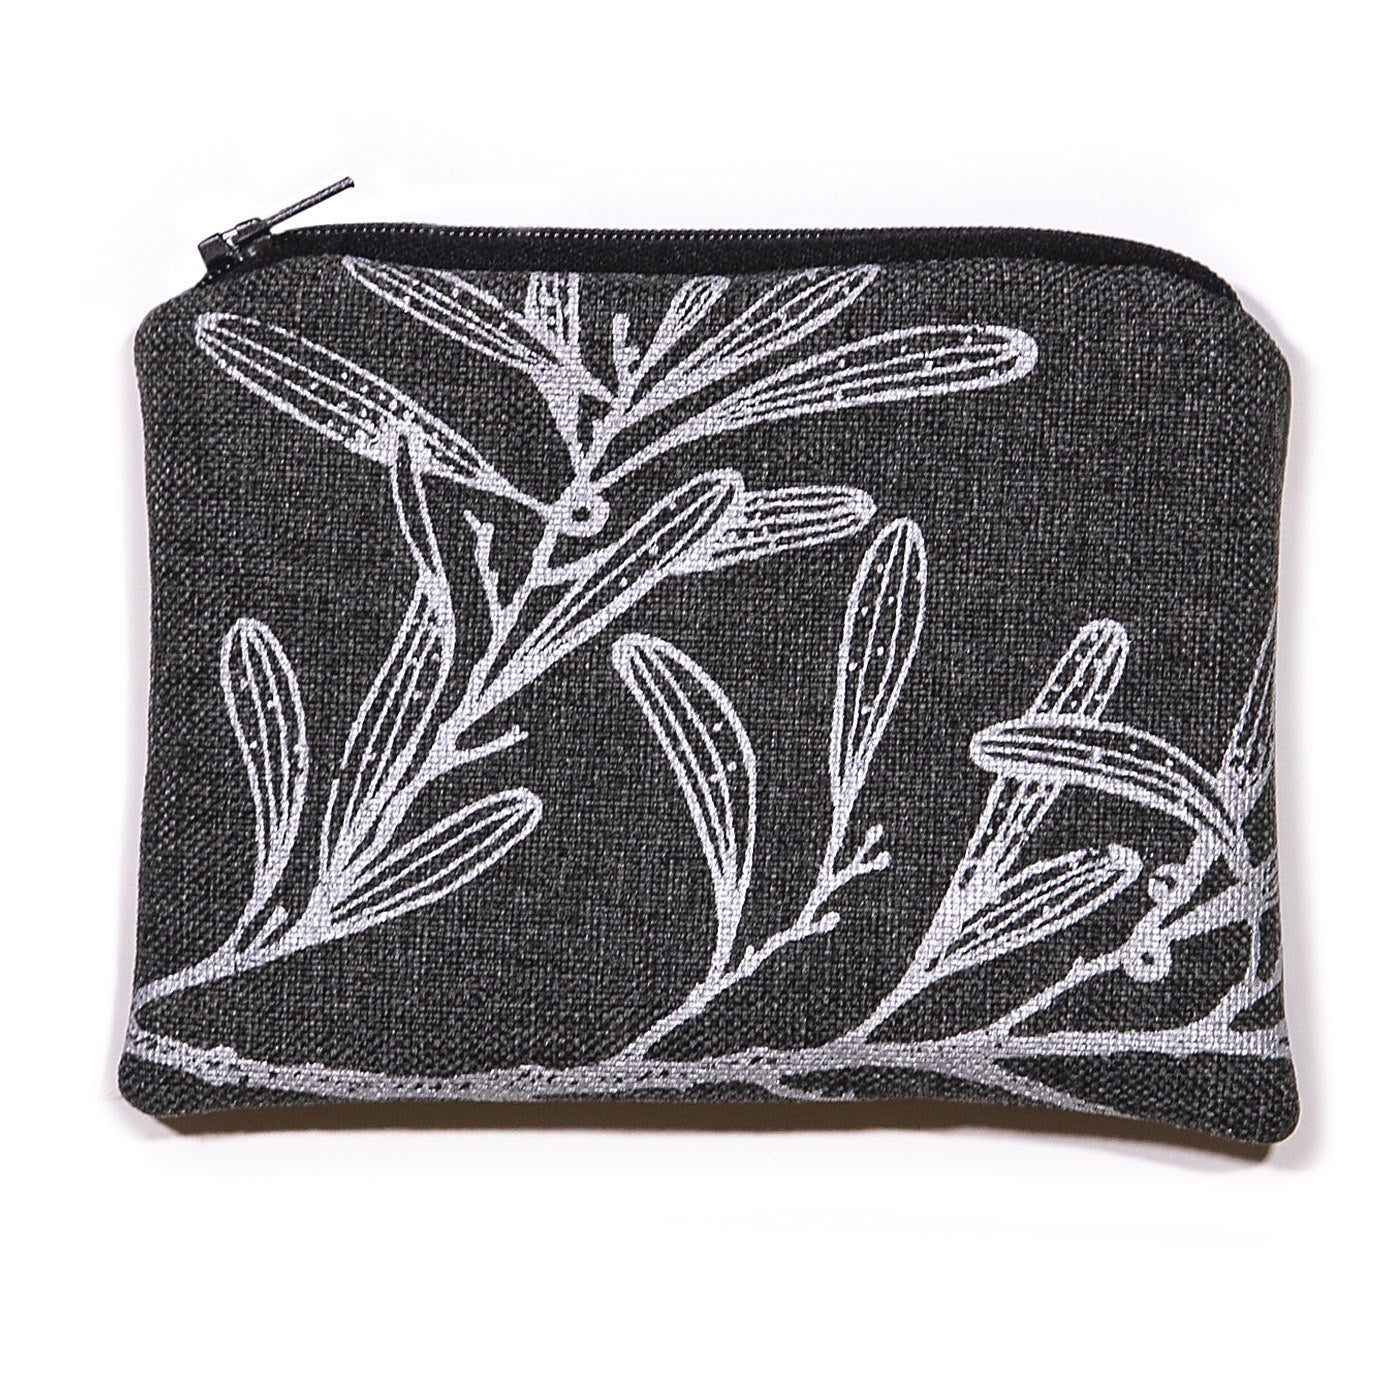 Stalley Textile Co - Zip Purse - Small - Blackwood - Silver on Charcoal